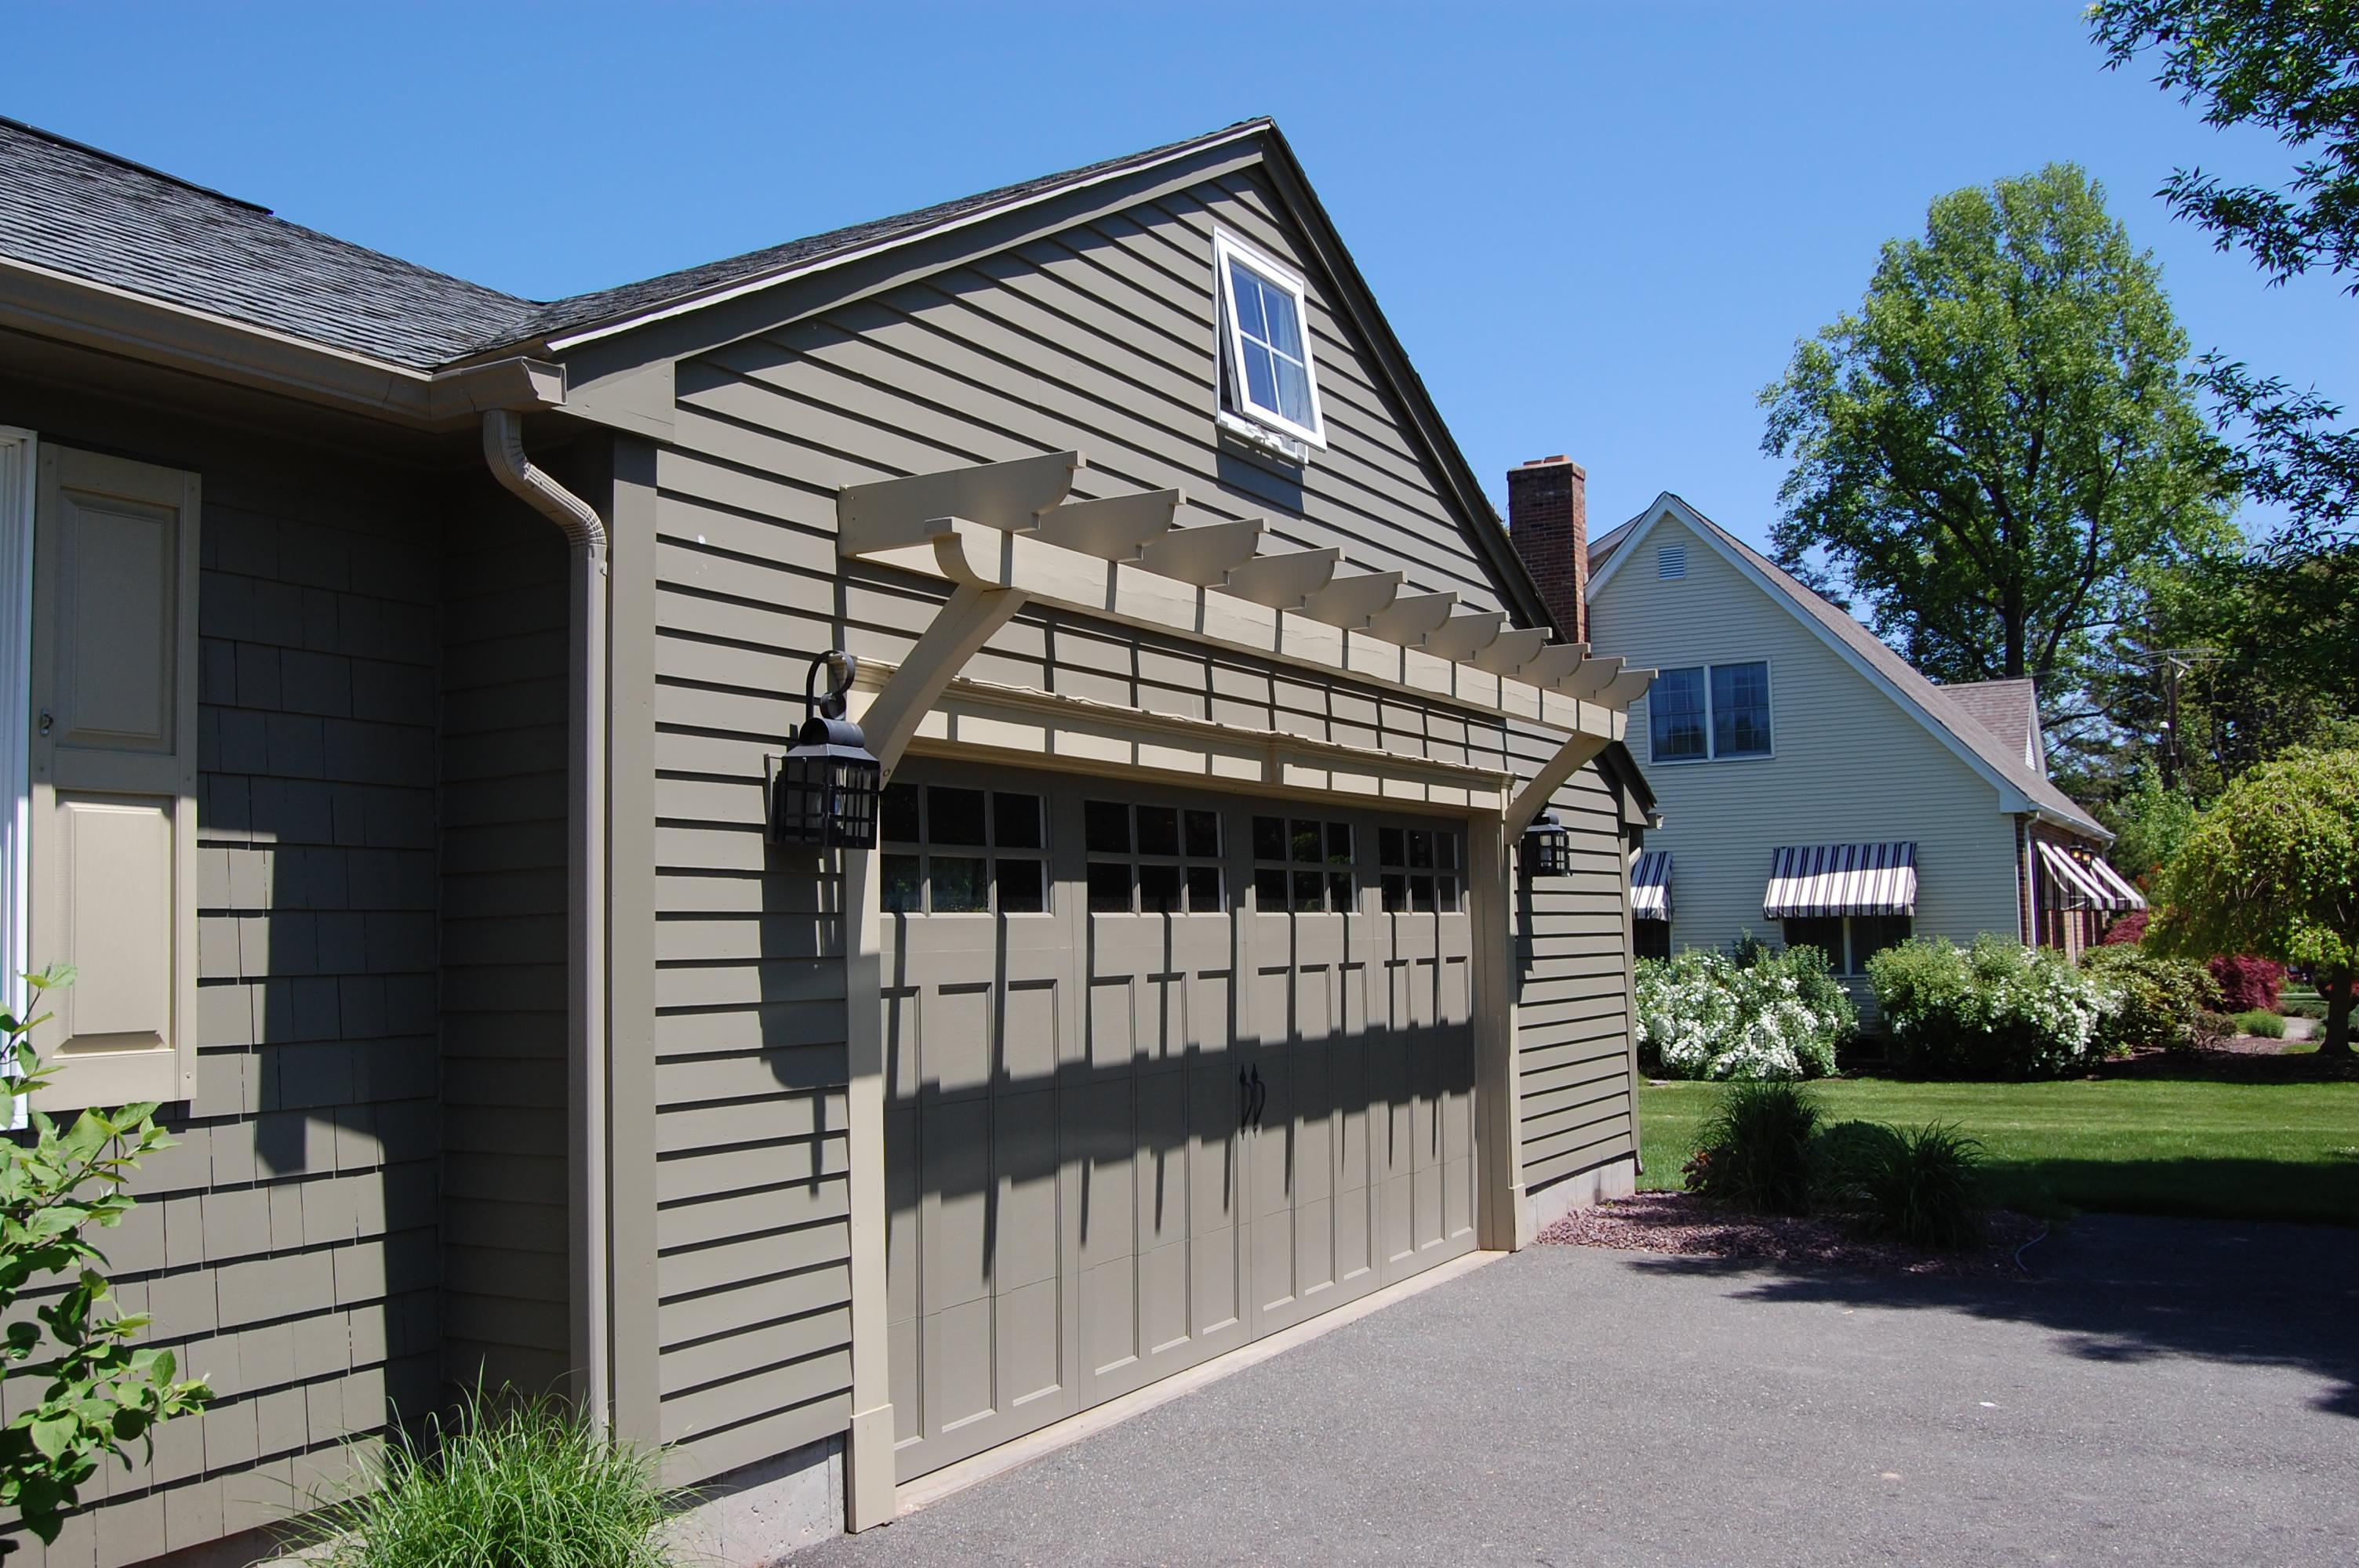 New Garage-Siding